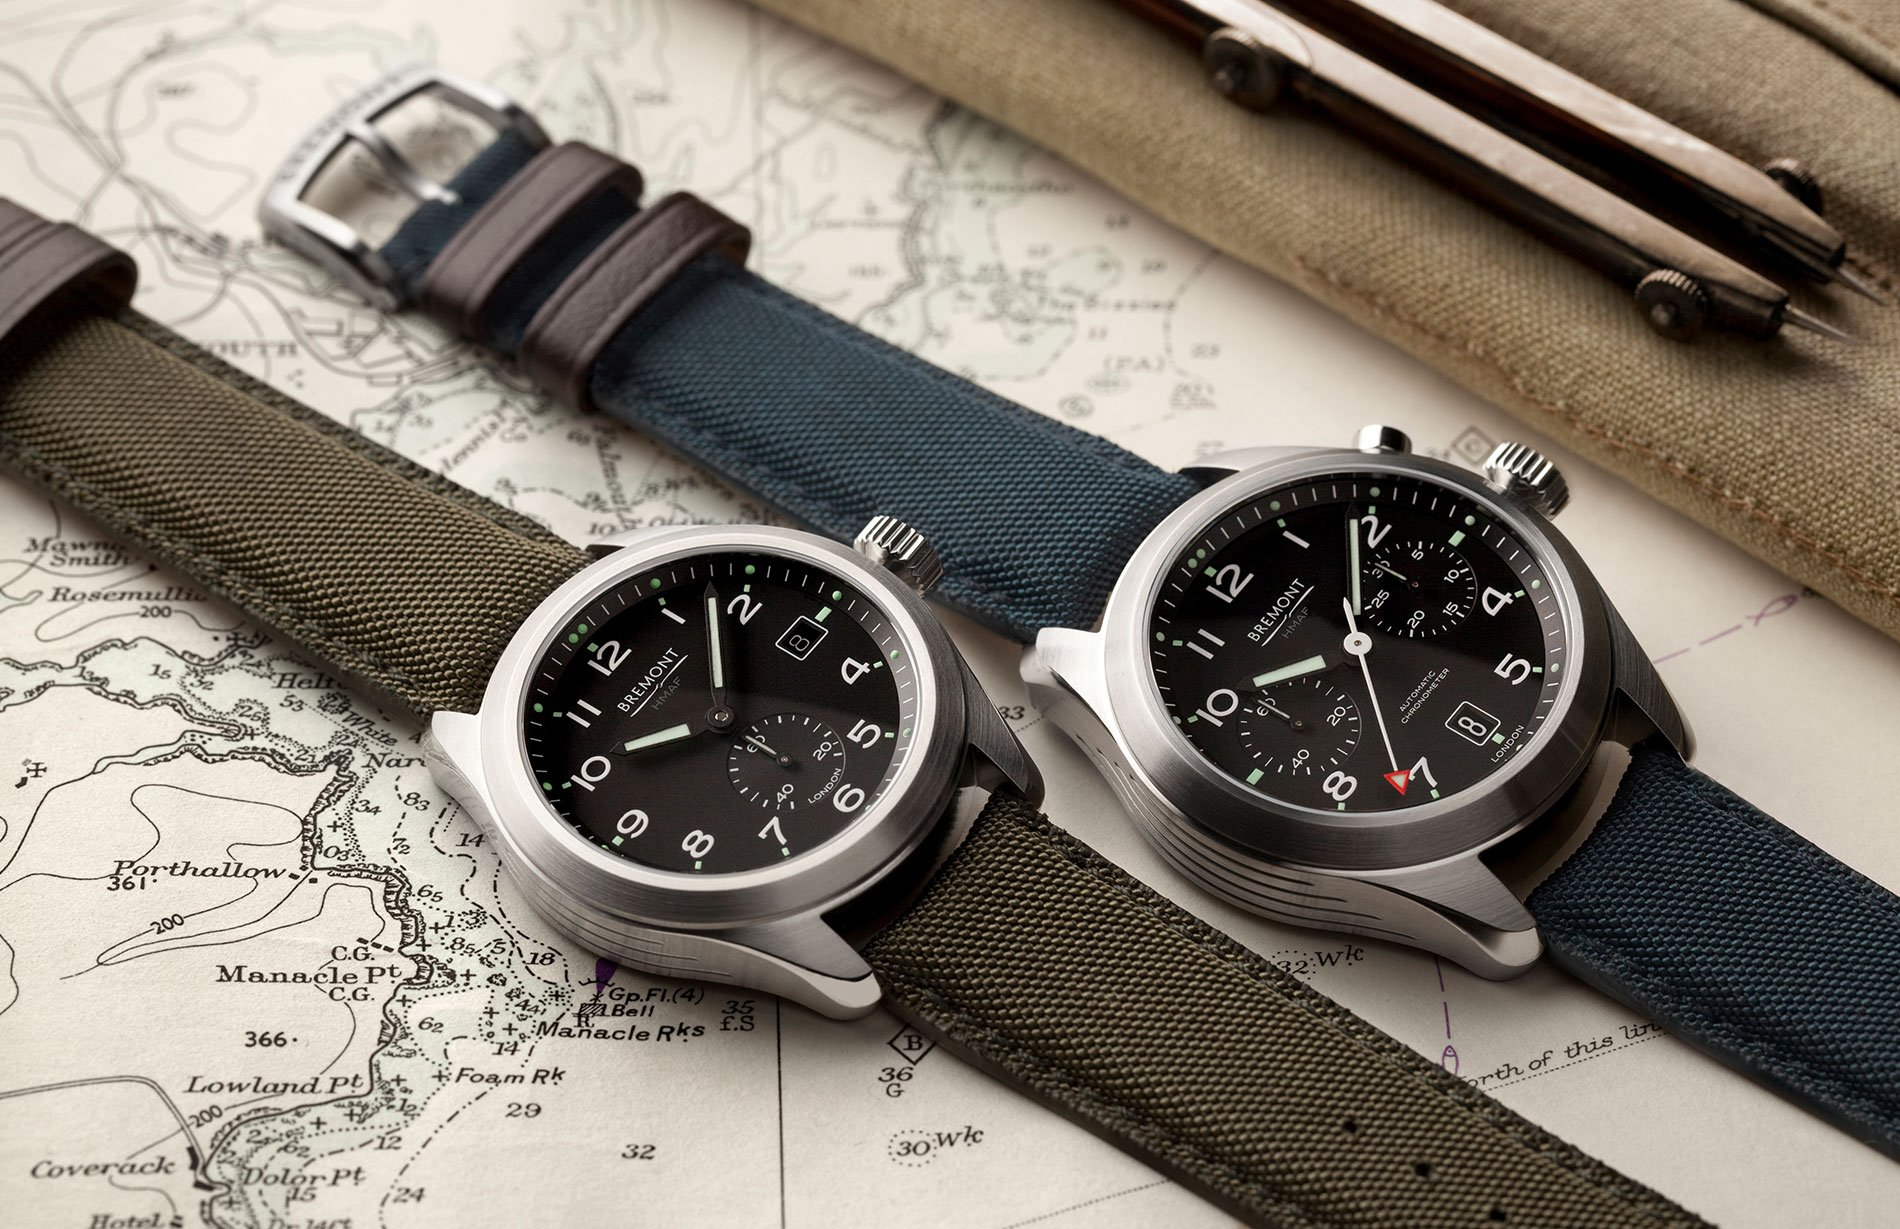 Two of the new timepieces from The Armed Forces Collection, namely the Bremont Broadsword (left) and the Bremont Arrow (right).